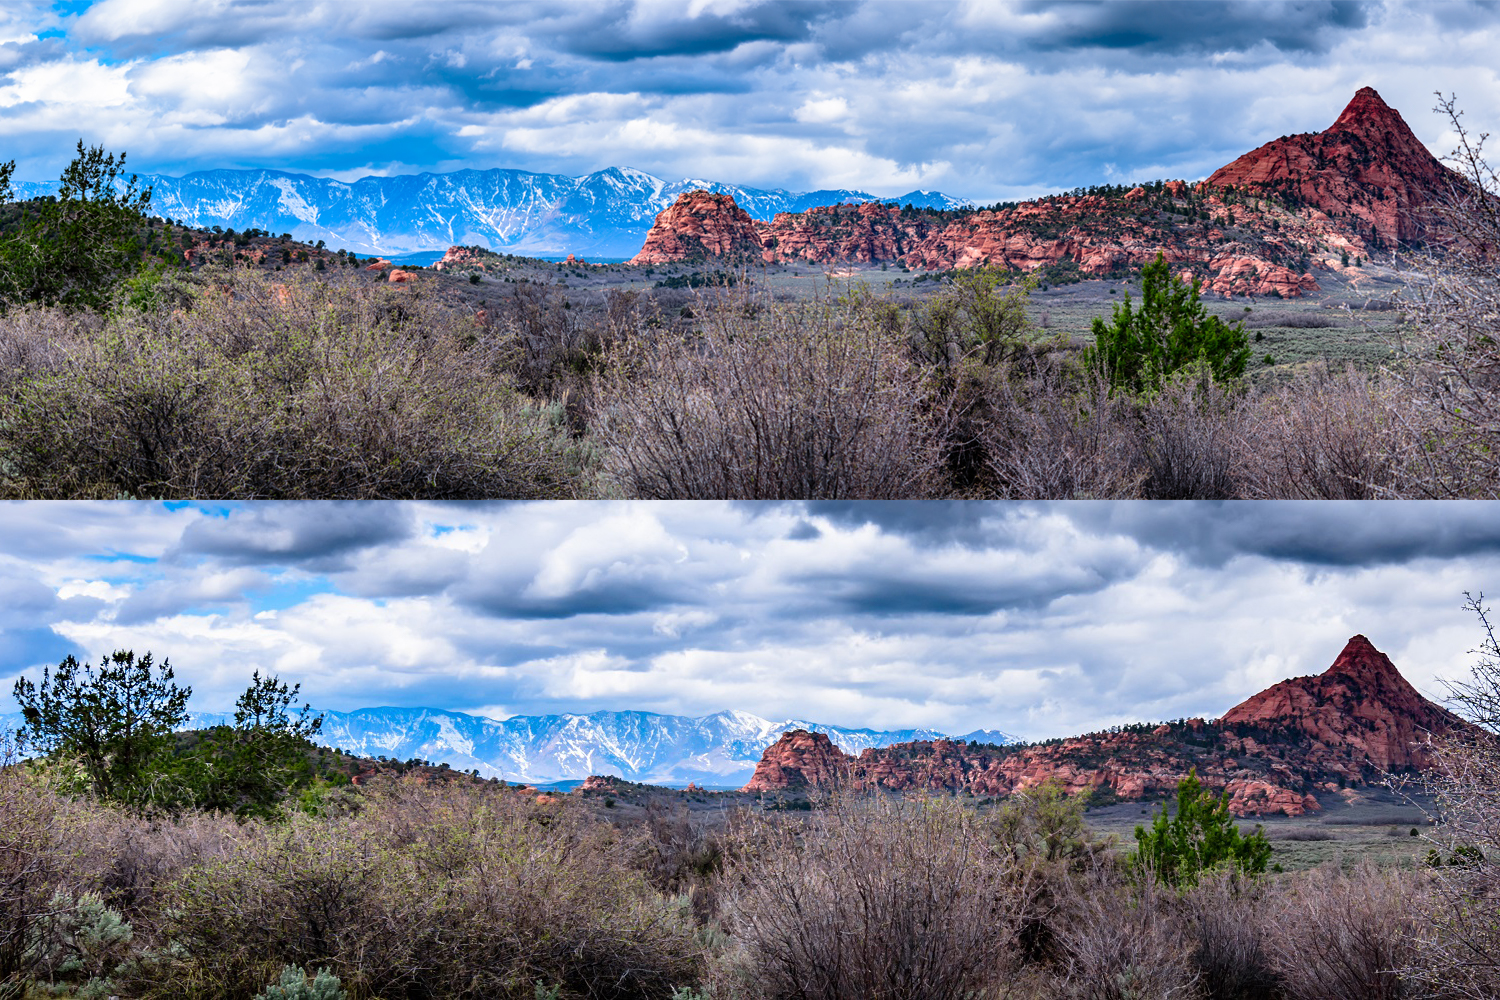 Red Butte - Panorama vs Wide Angle - This is from my trip to Utah last March. We drove into the northern part of Zion National Park and took a short walk down the Hop Valley Trail. The light was coming through the clouds and started hitting Black Ridge in the background when we weren't far down the trail.